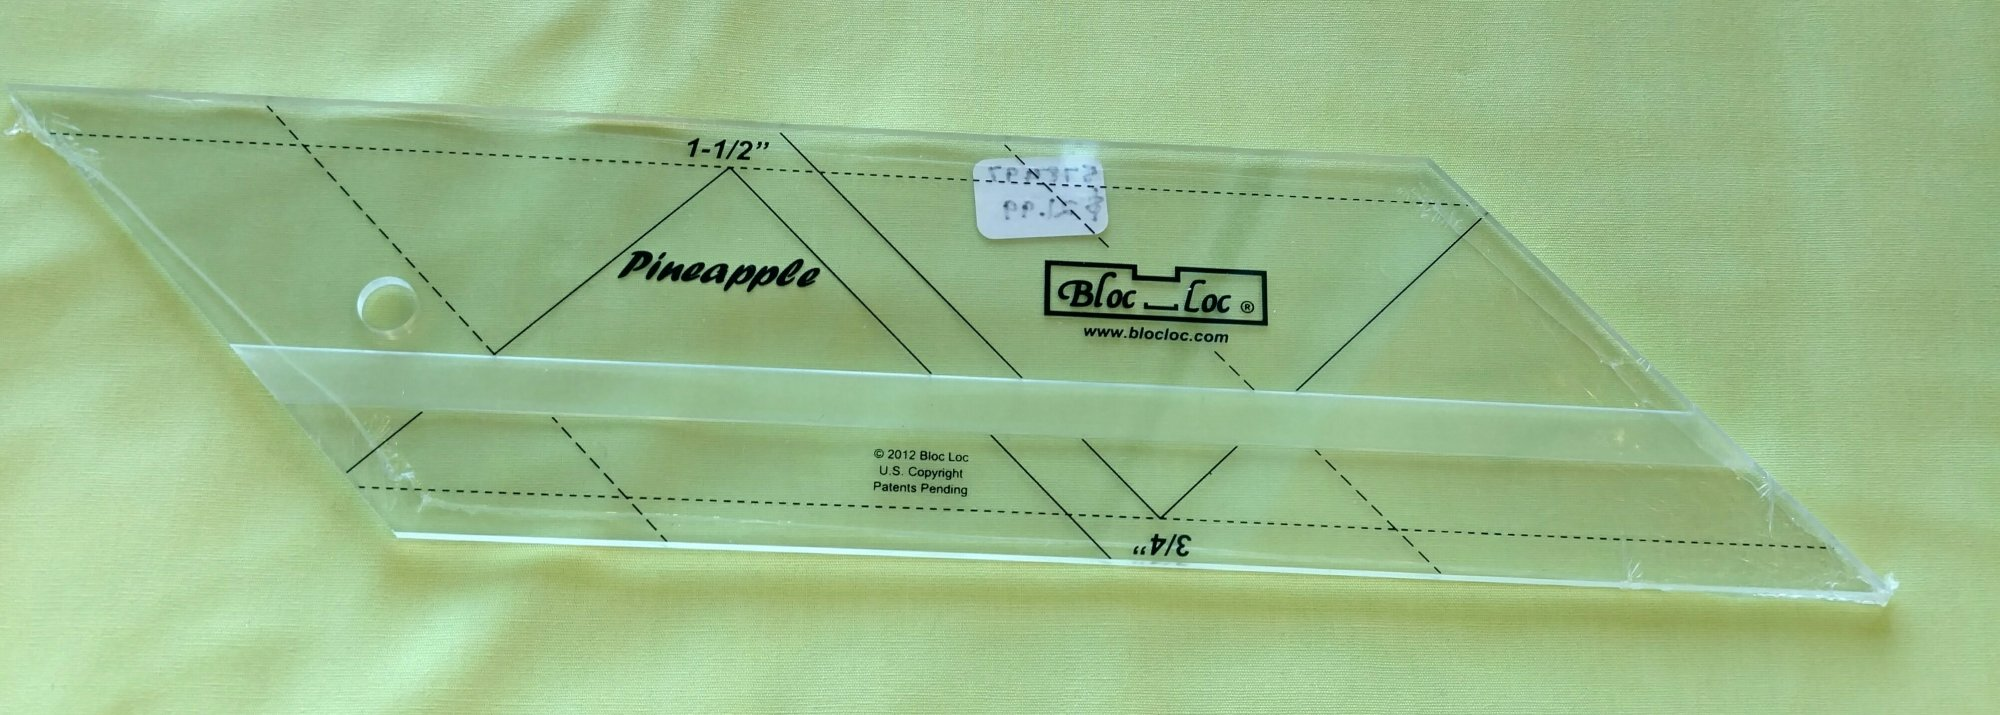 Pineapple BlocLoc Ruler 3/4 x 1-1/2